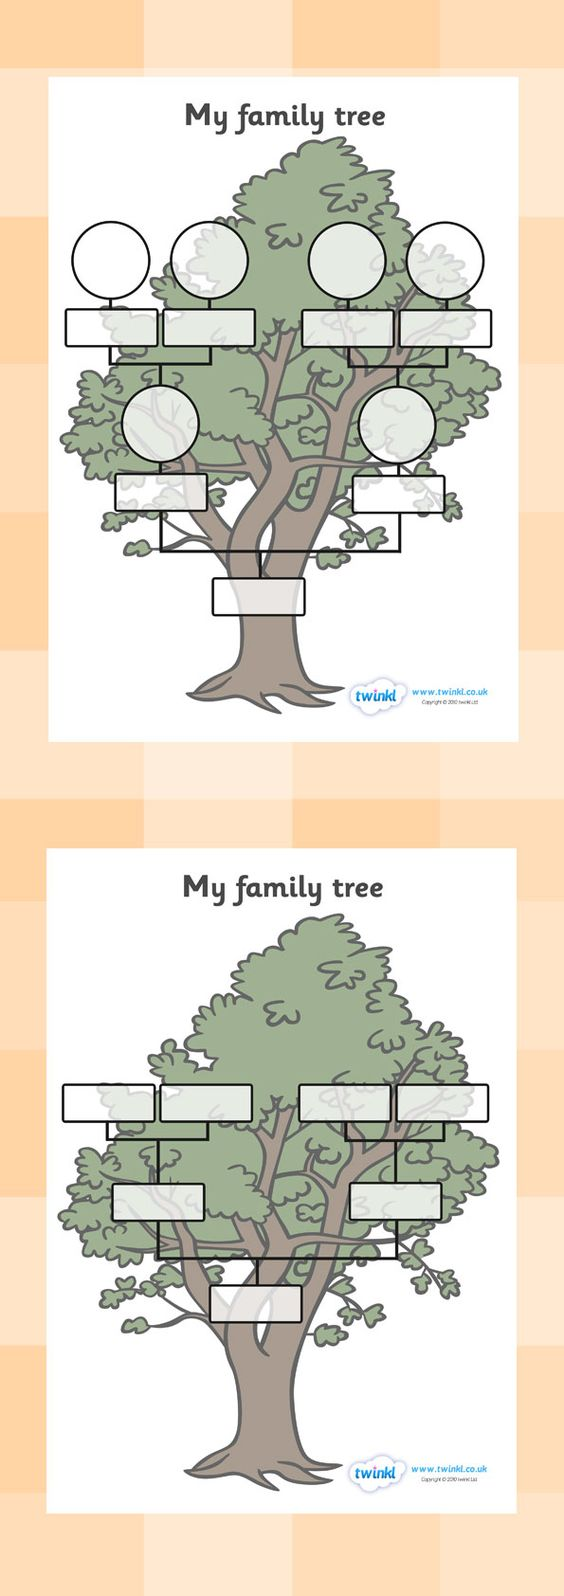 Kindergarten family tree worksheets my family tree for Preschool family tree template